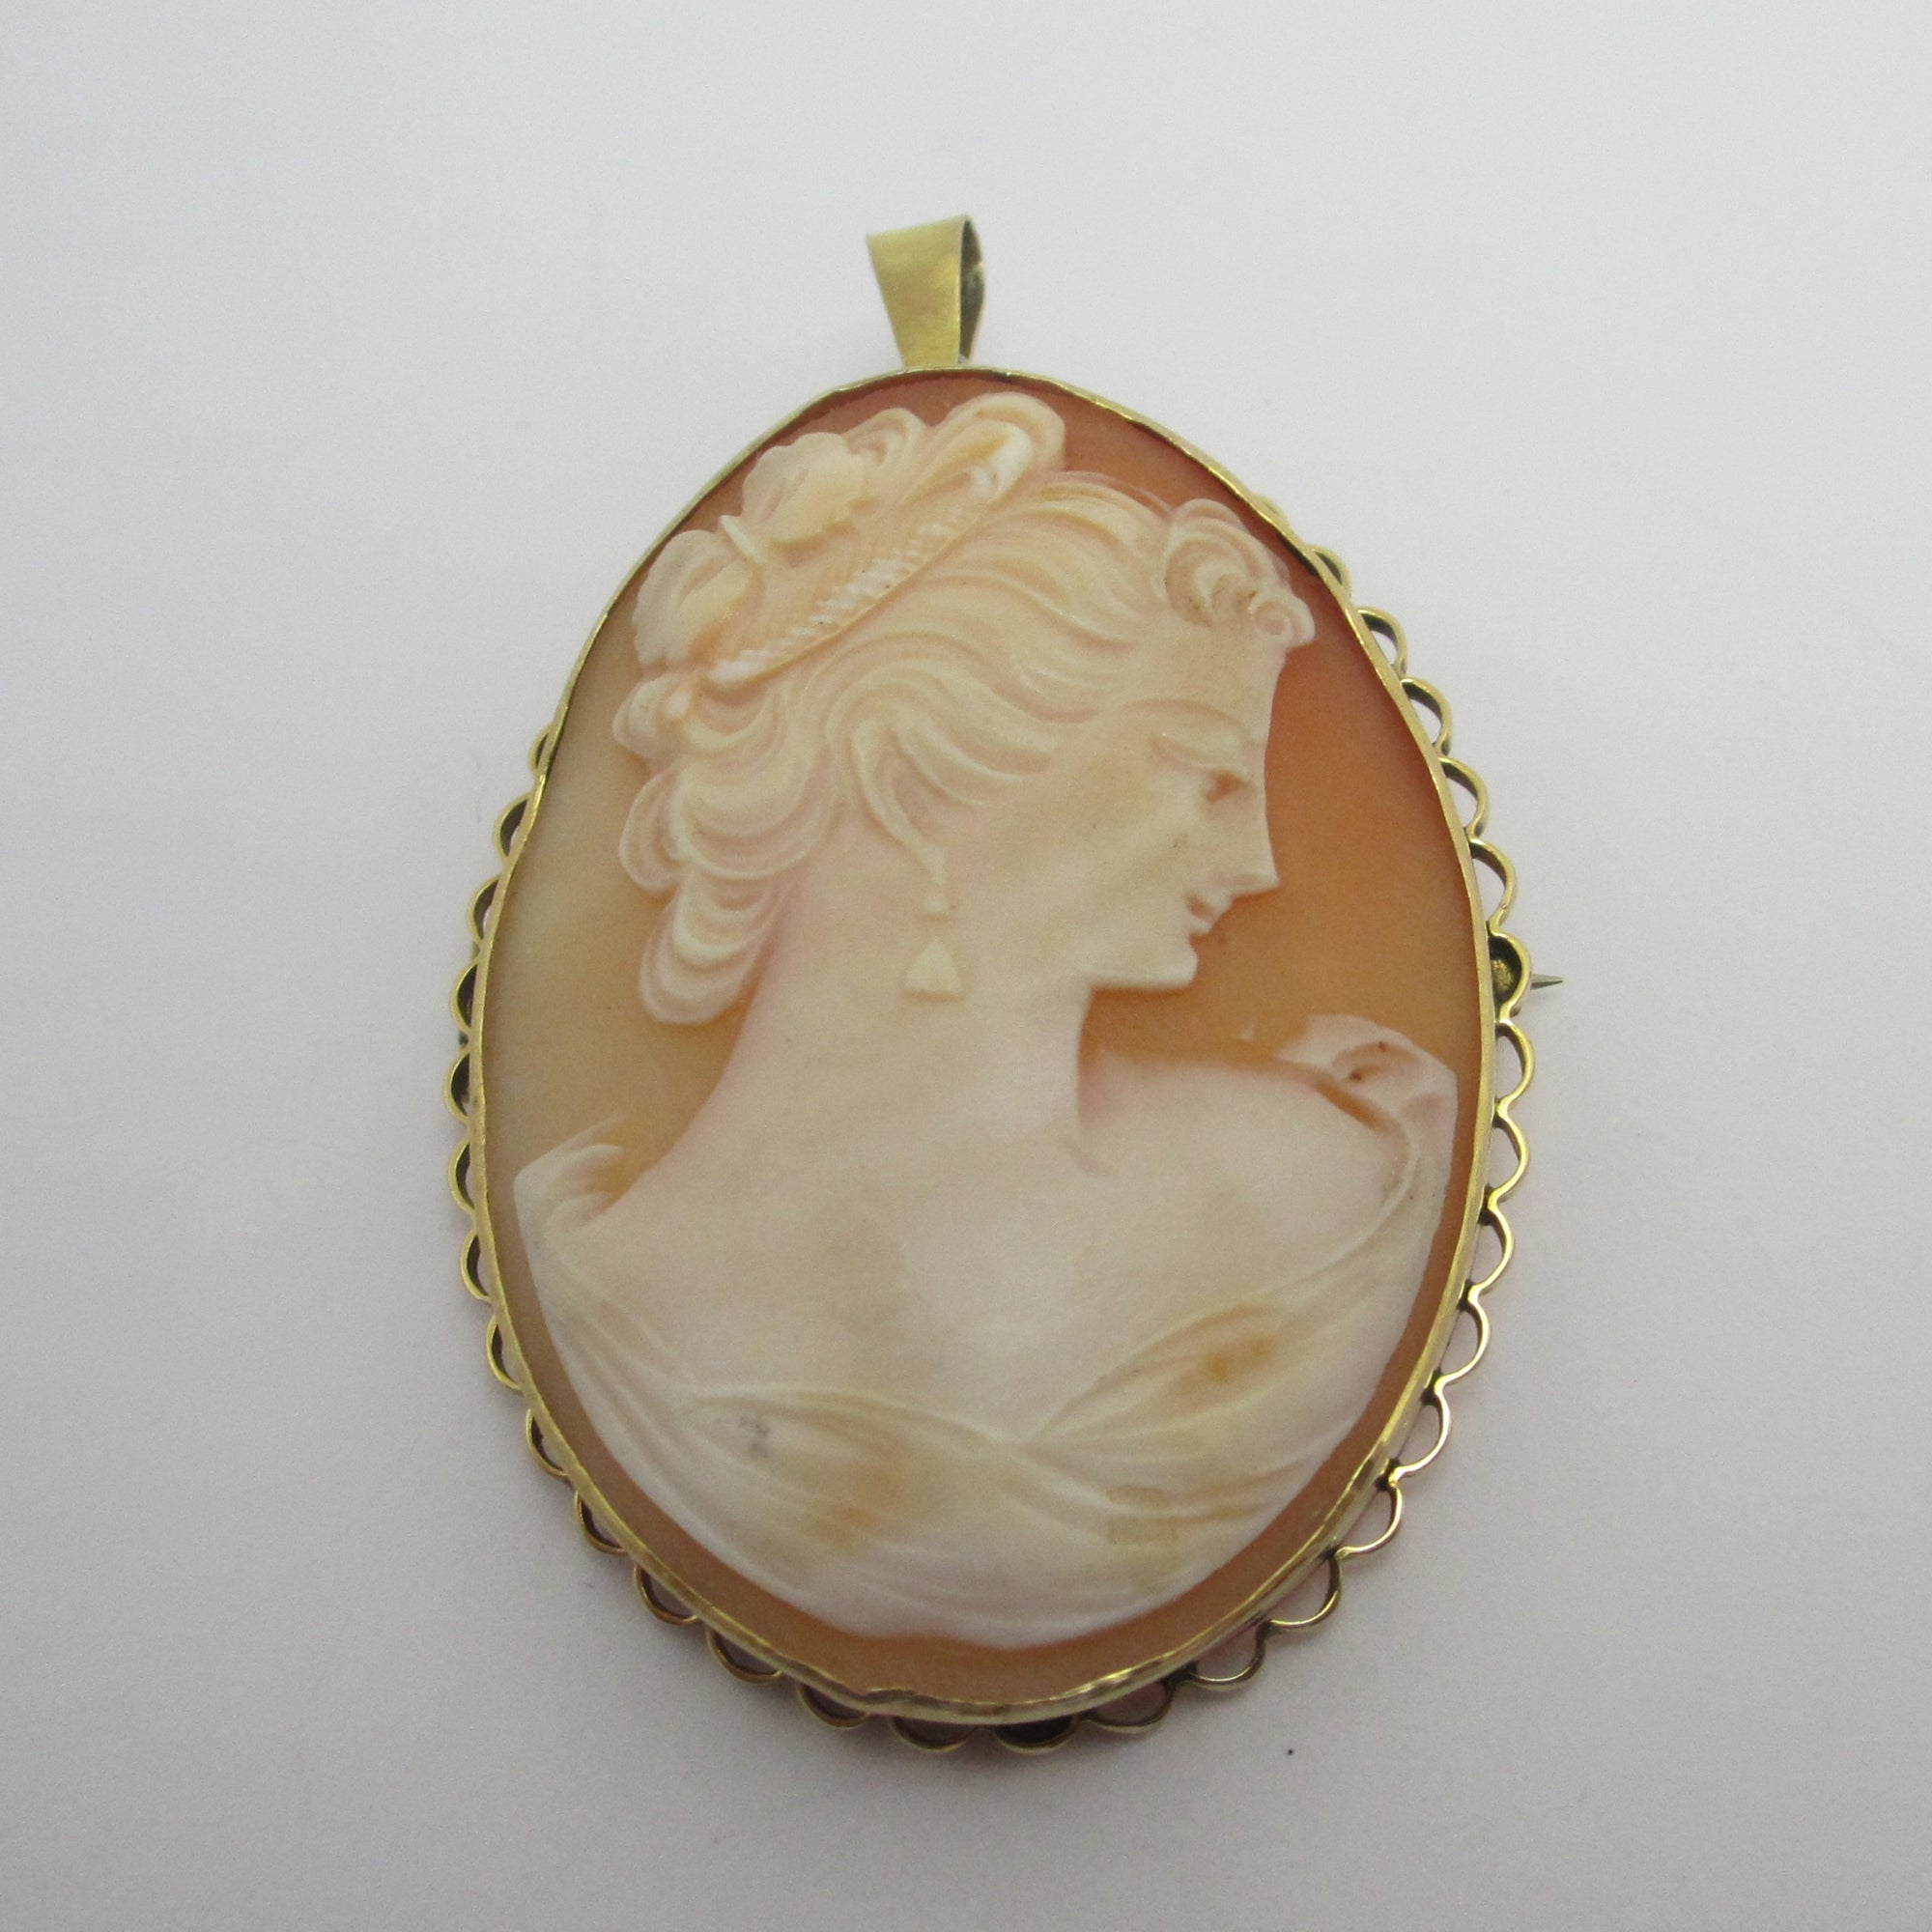 Lady in Side Profile Shell Cameo 9k Gold Brooch Pin or Pendant Vintage c1970